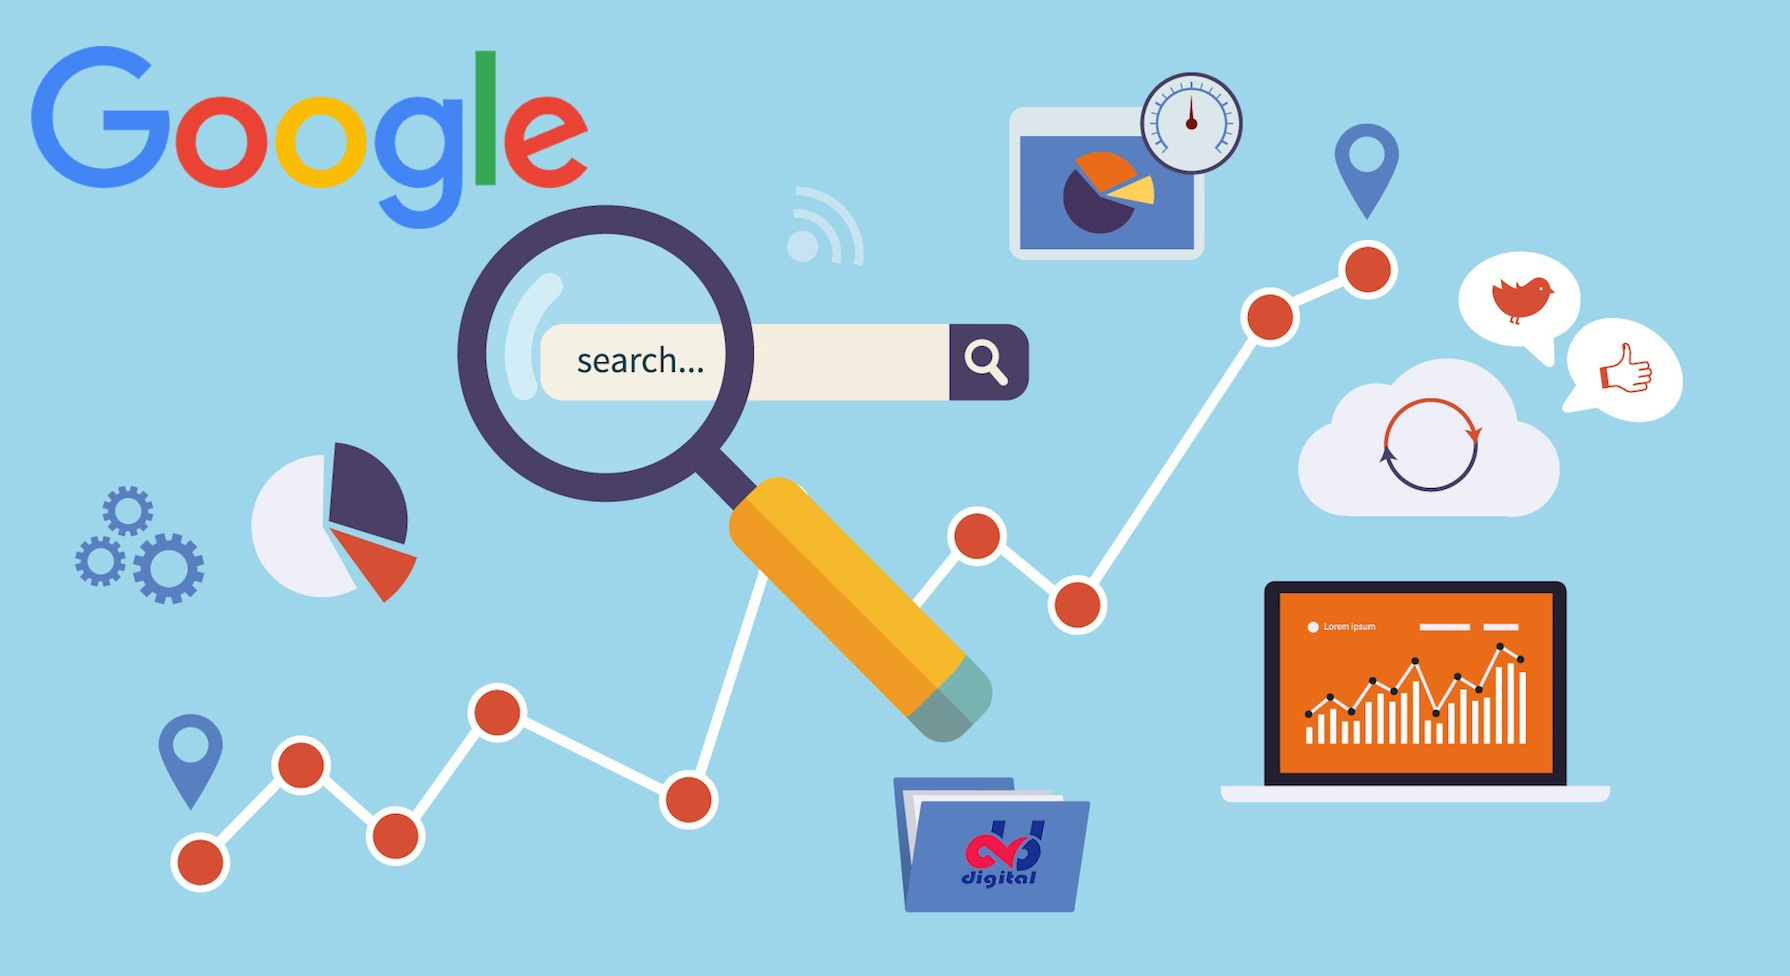 A Comprehensive Guide To Improving Your Google Rankings Without Risking Penalties